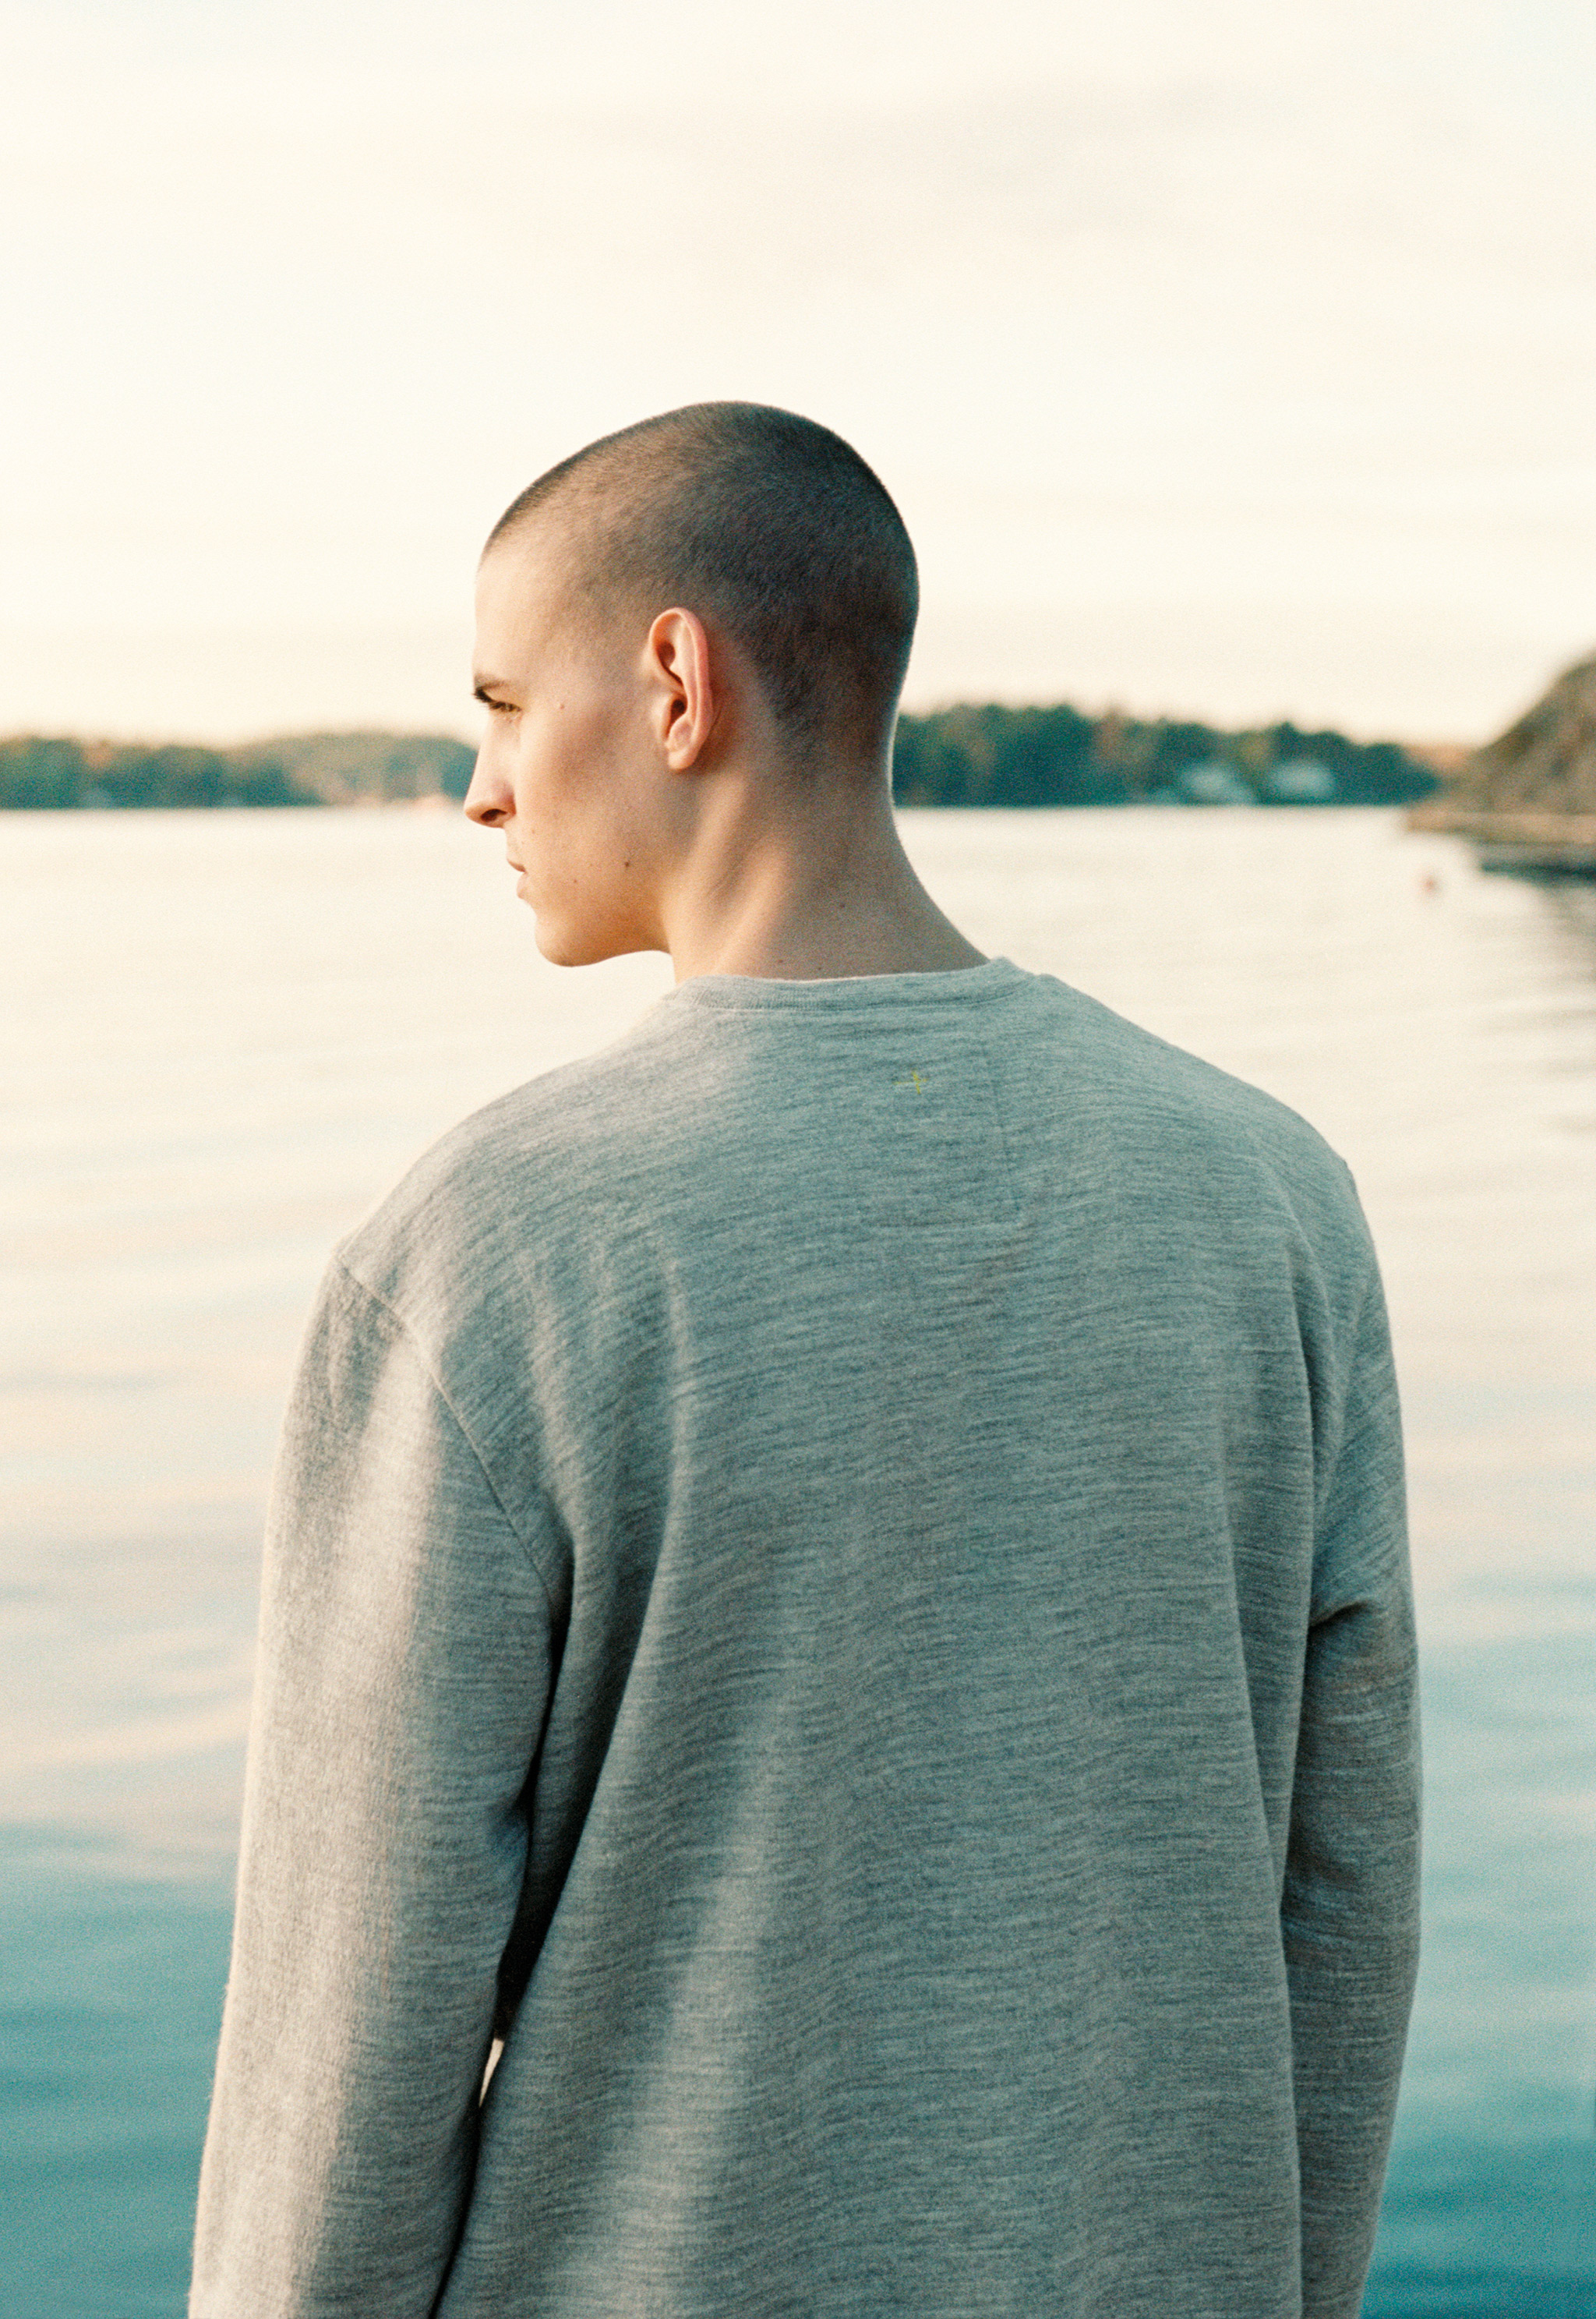 A back view of a man of white Swedish descent wearing a grey sweatshirt, with a yellow embroidered Nordic cross just below his neck